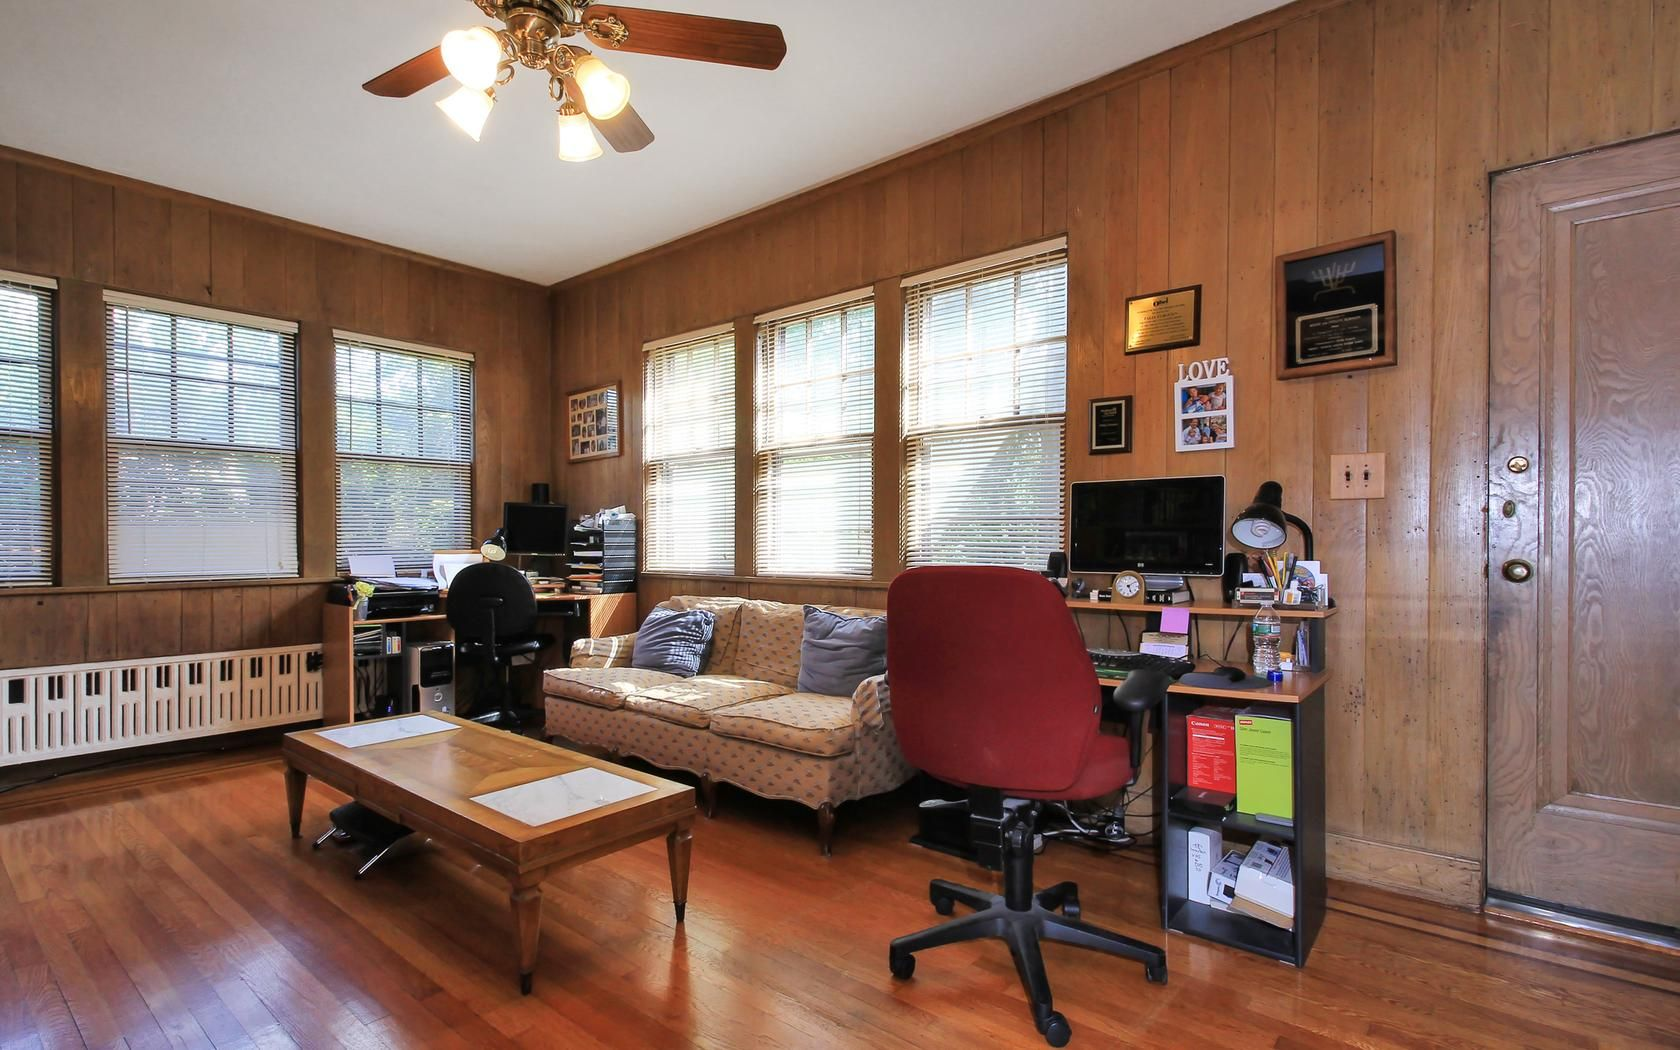 Office, Study, Lounge, Family Room, Interiors | 66 Cherry Ln ...